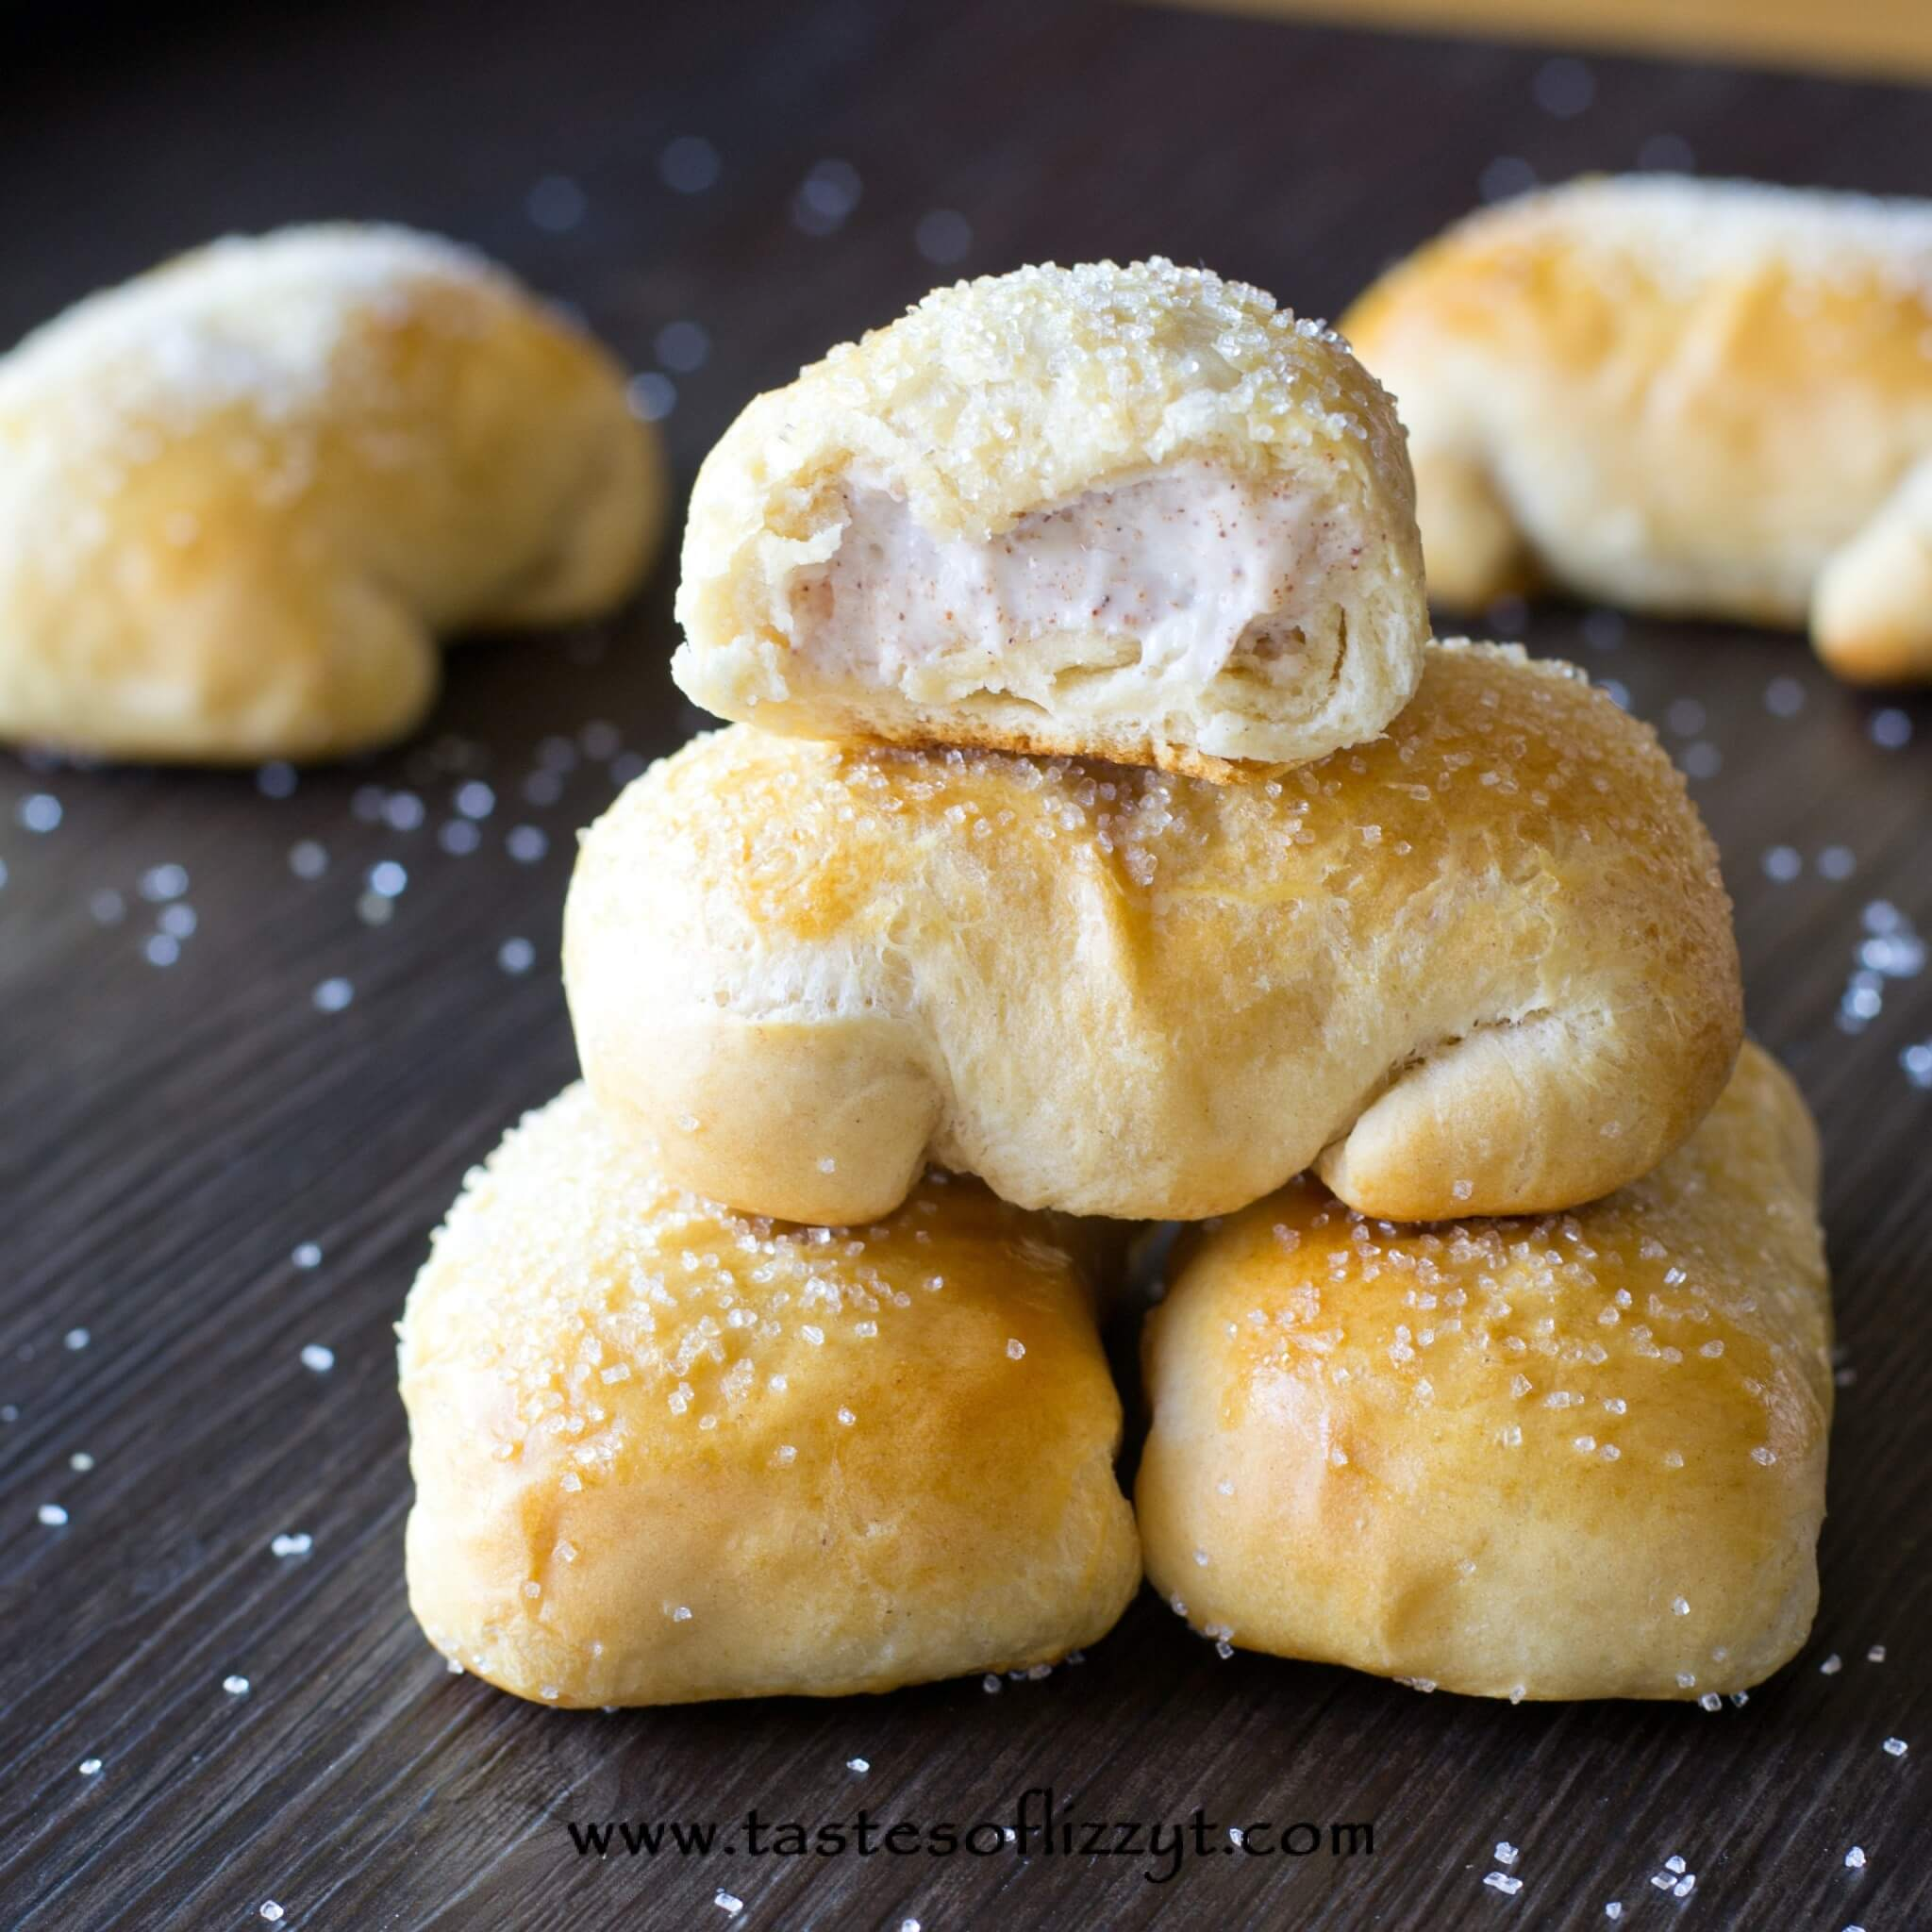 These Cinnamon Cream Cheese Pastry Puffs are our copycat version of McDonalds petite breakfast pastries. Make the simply with Pillsbury biscuit dough!